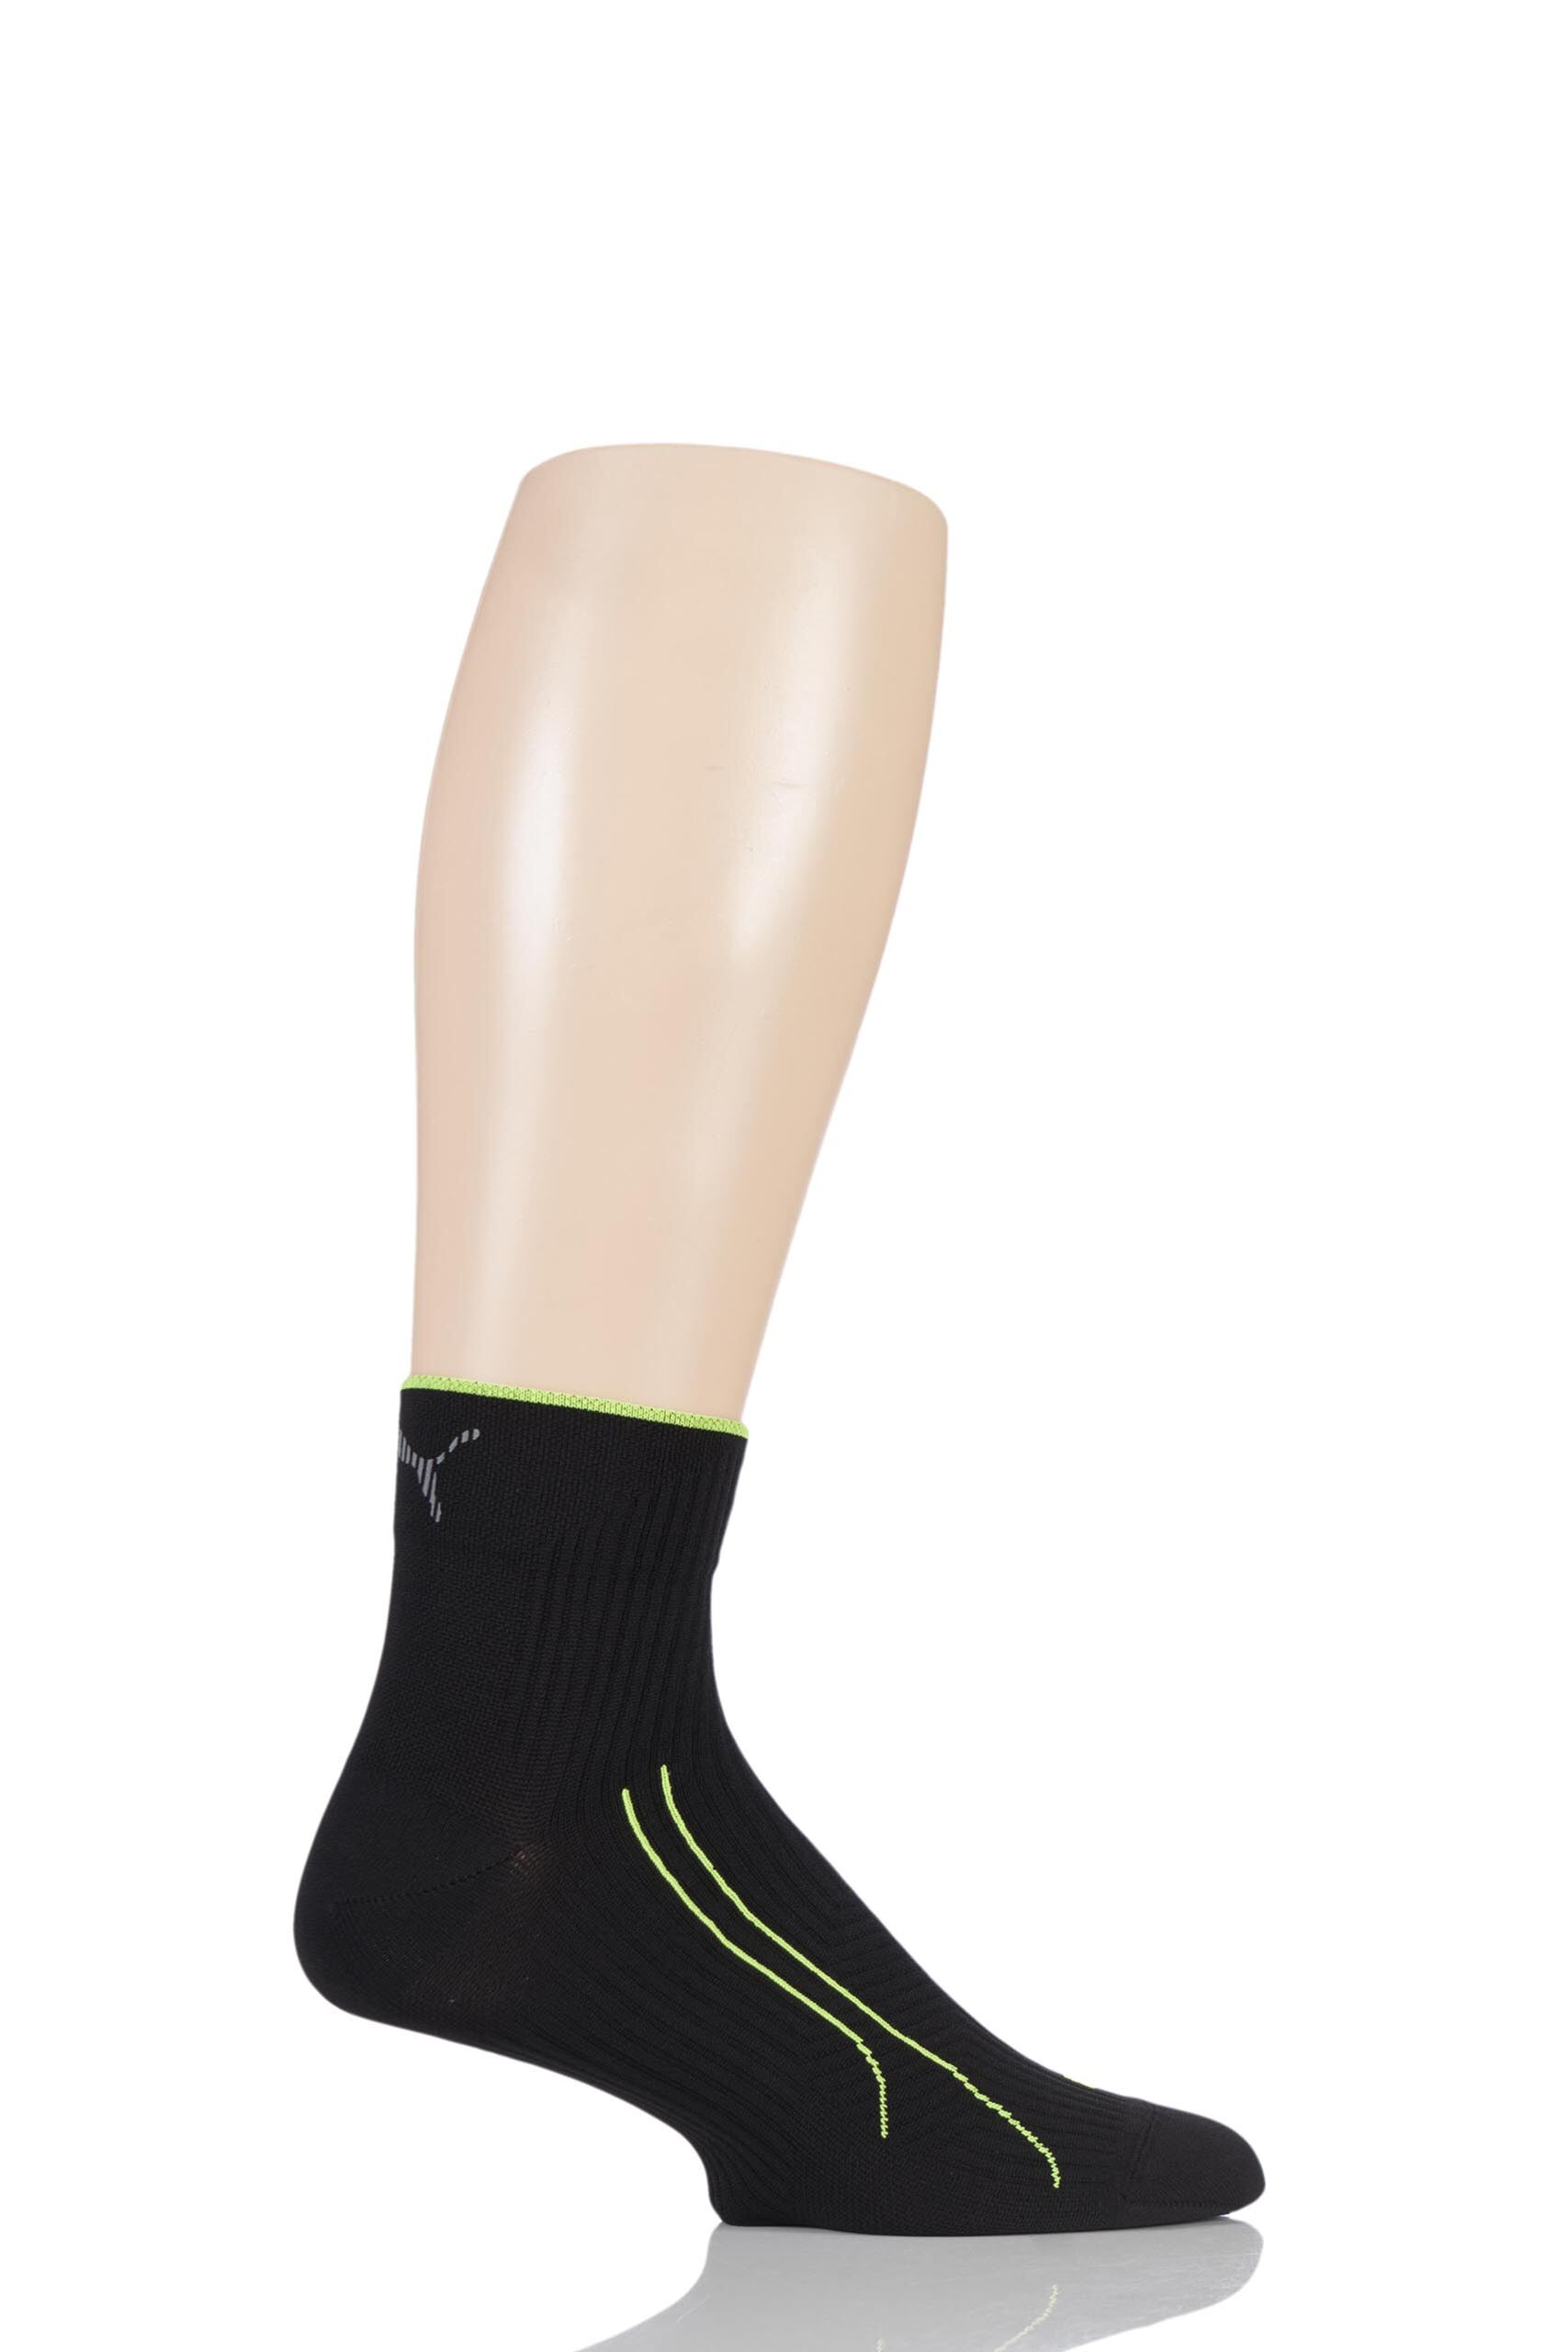 Image of 1 Pair Black Performance Running Compression Quarter Socks with Tactel Unisex 2.5-5 Unisex - Puma